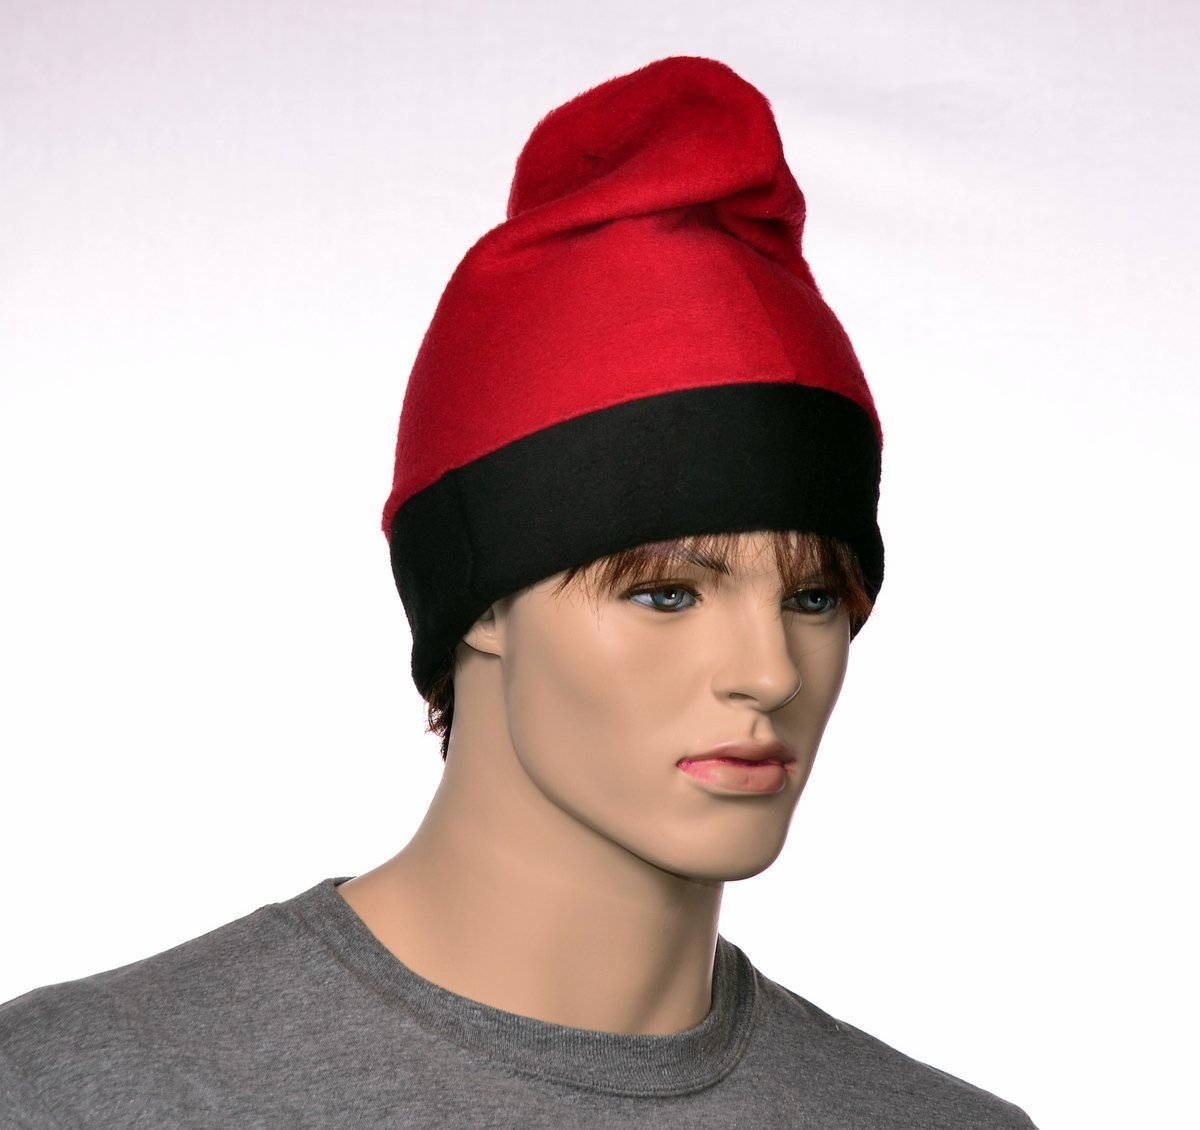 Barretina Cap in Red and Black Fleece Beanie Unisex Hat